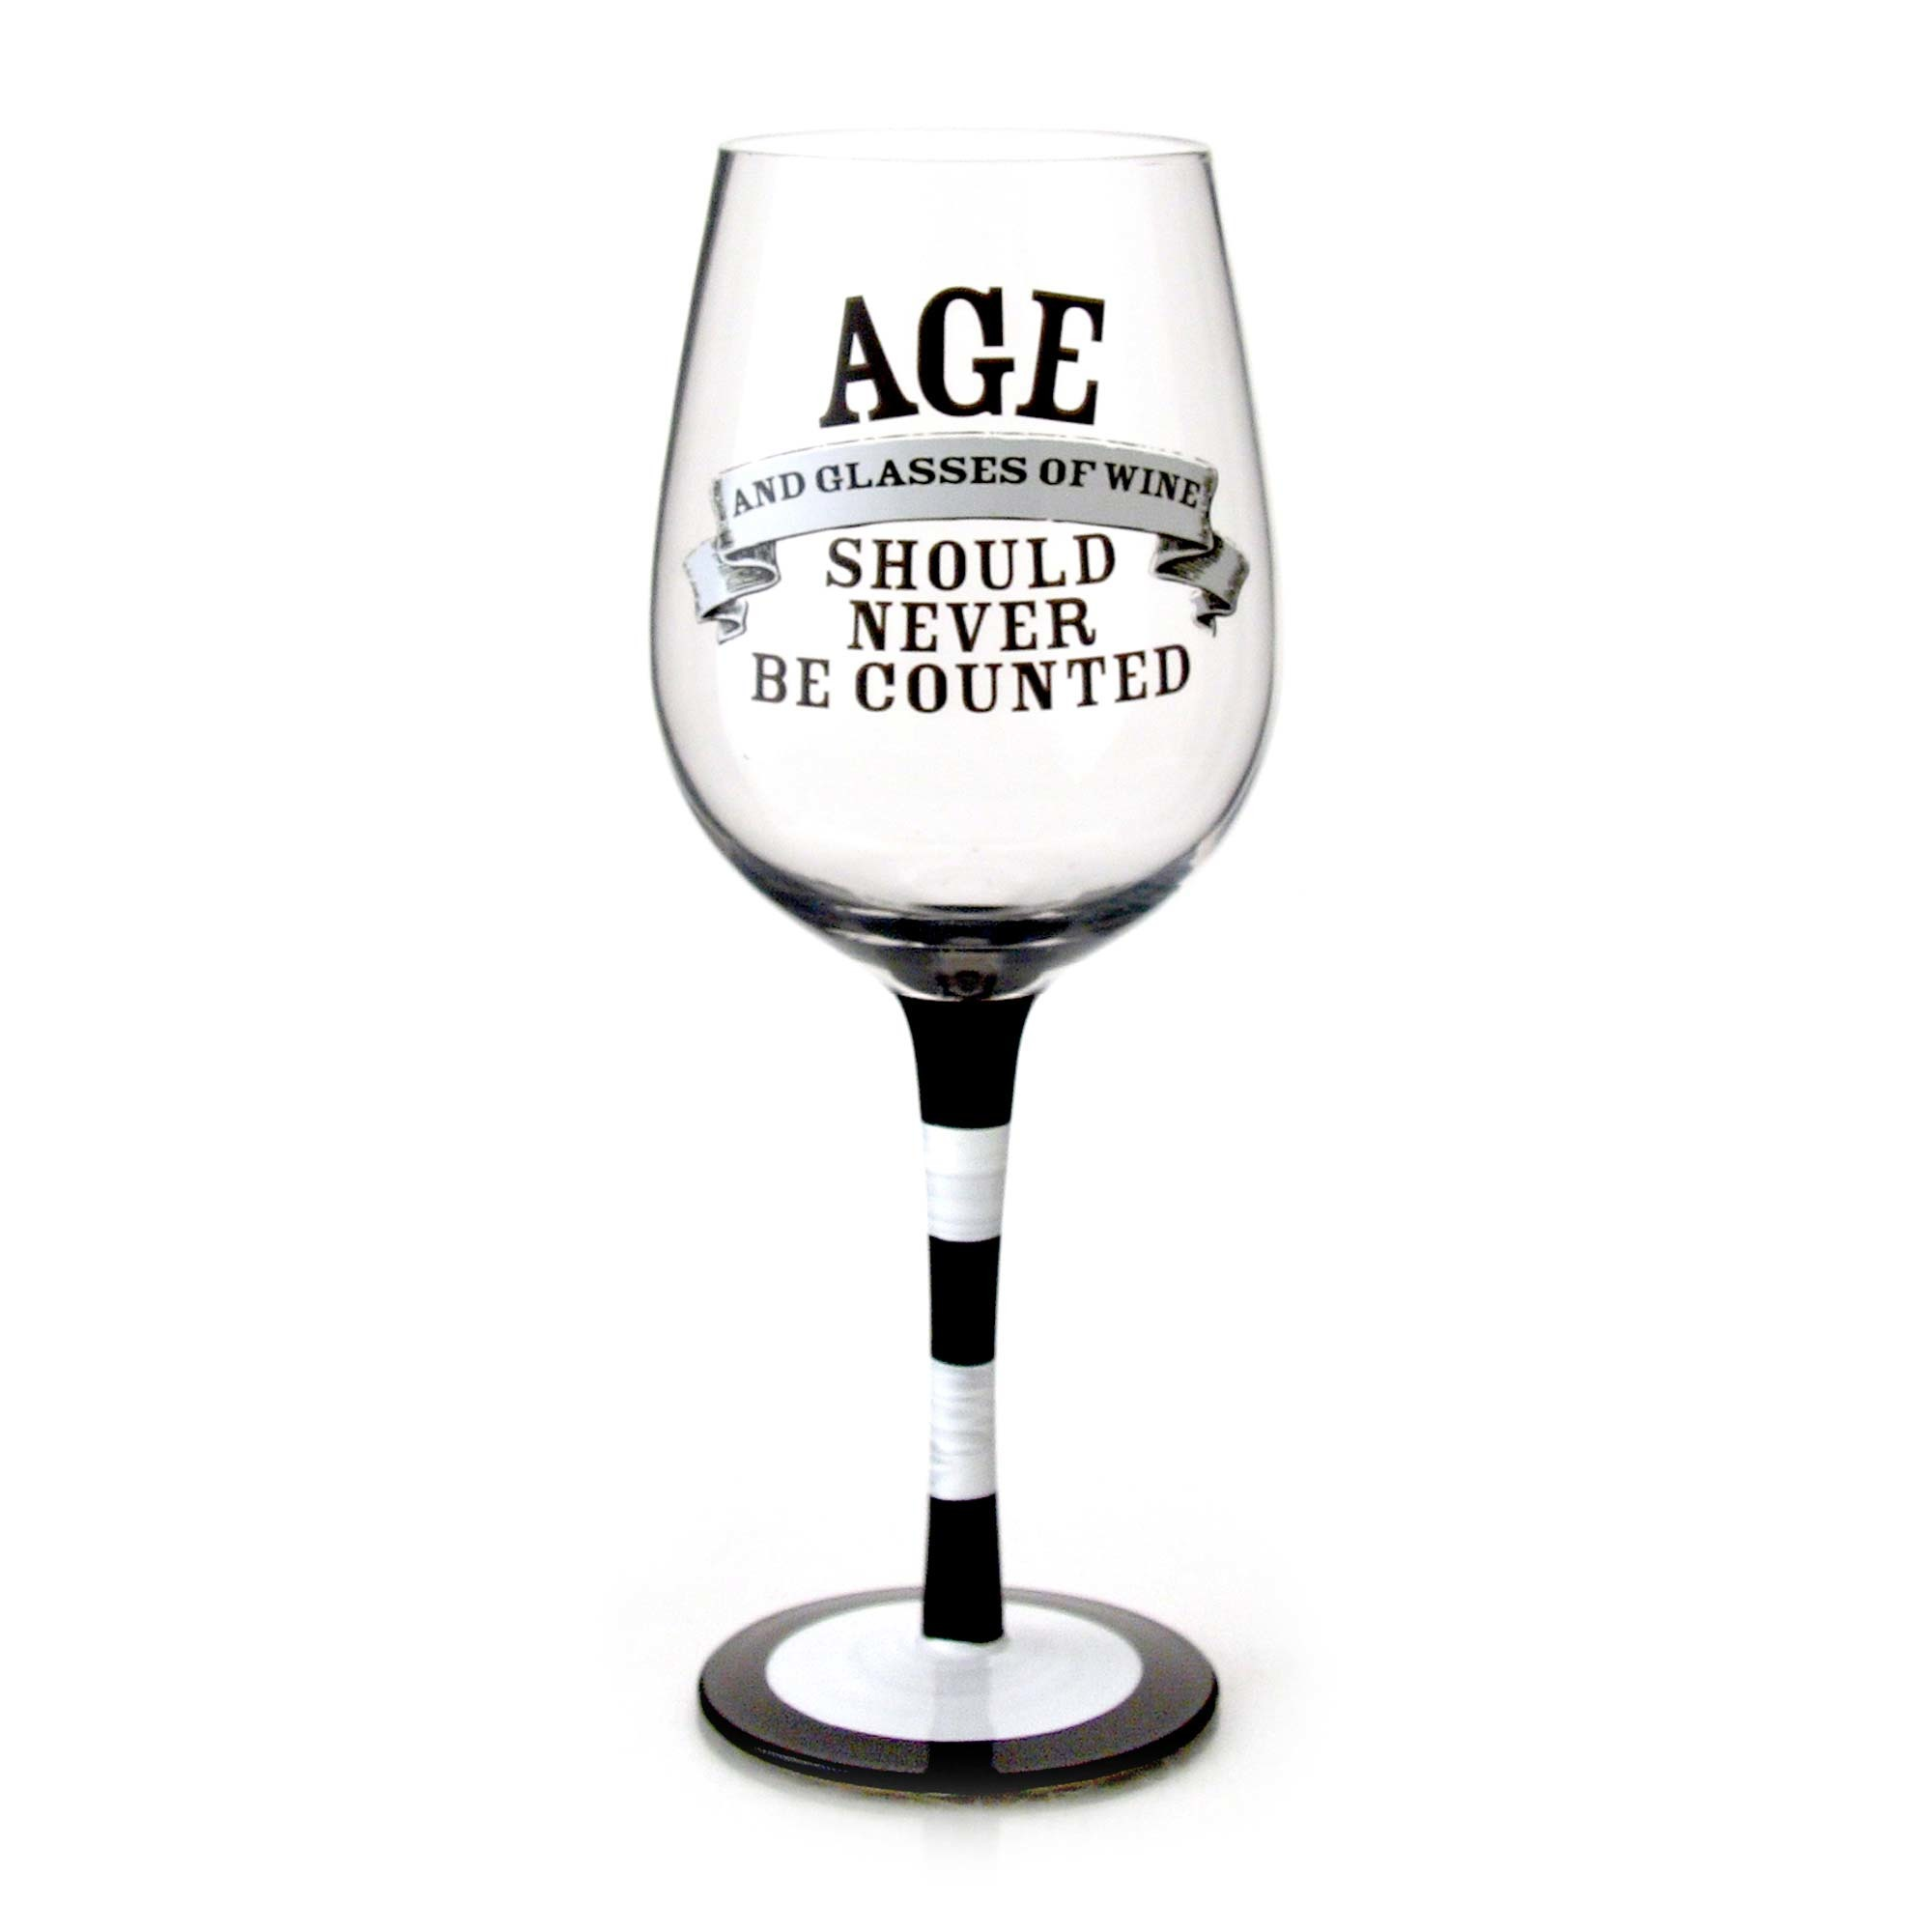 Age Wine counting Glass - Age And Glasses Of Wine Should Never Be Counted